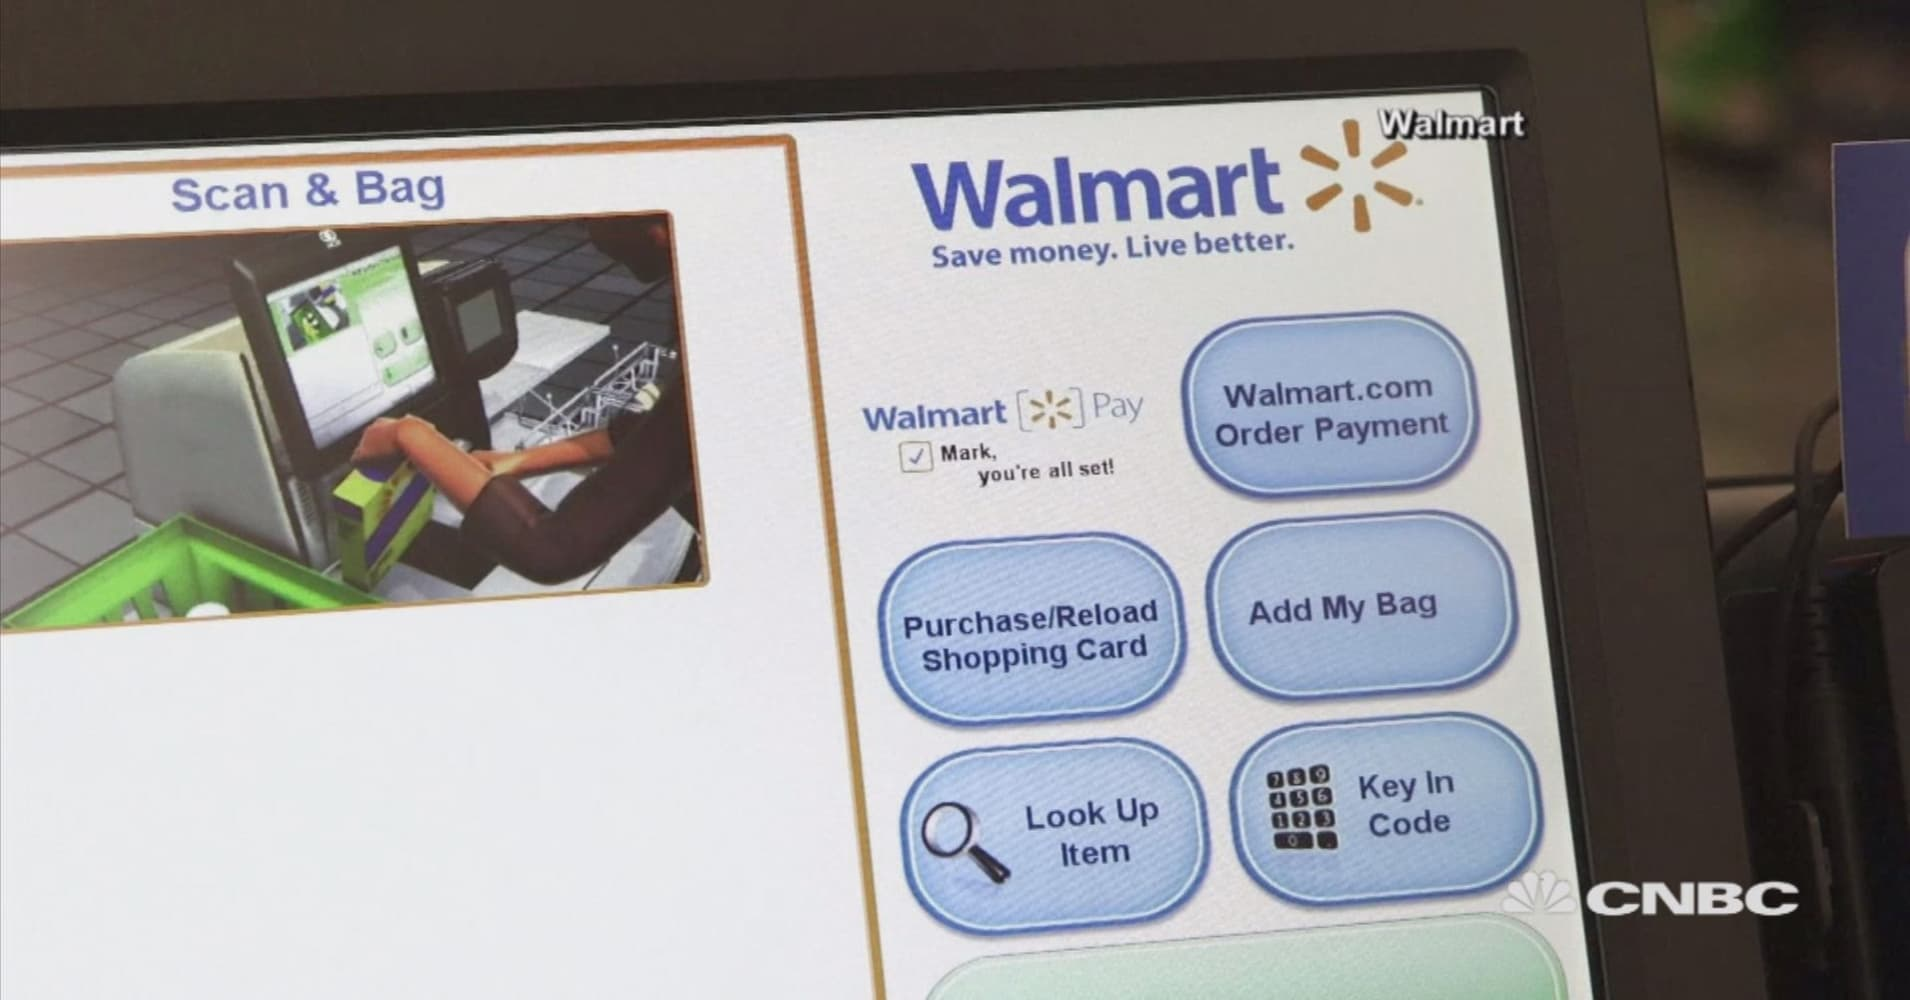 Walmart has a big year of e-commerce investments planned